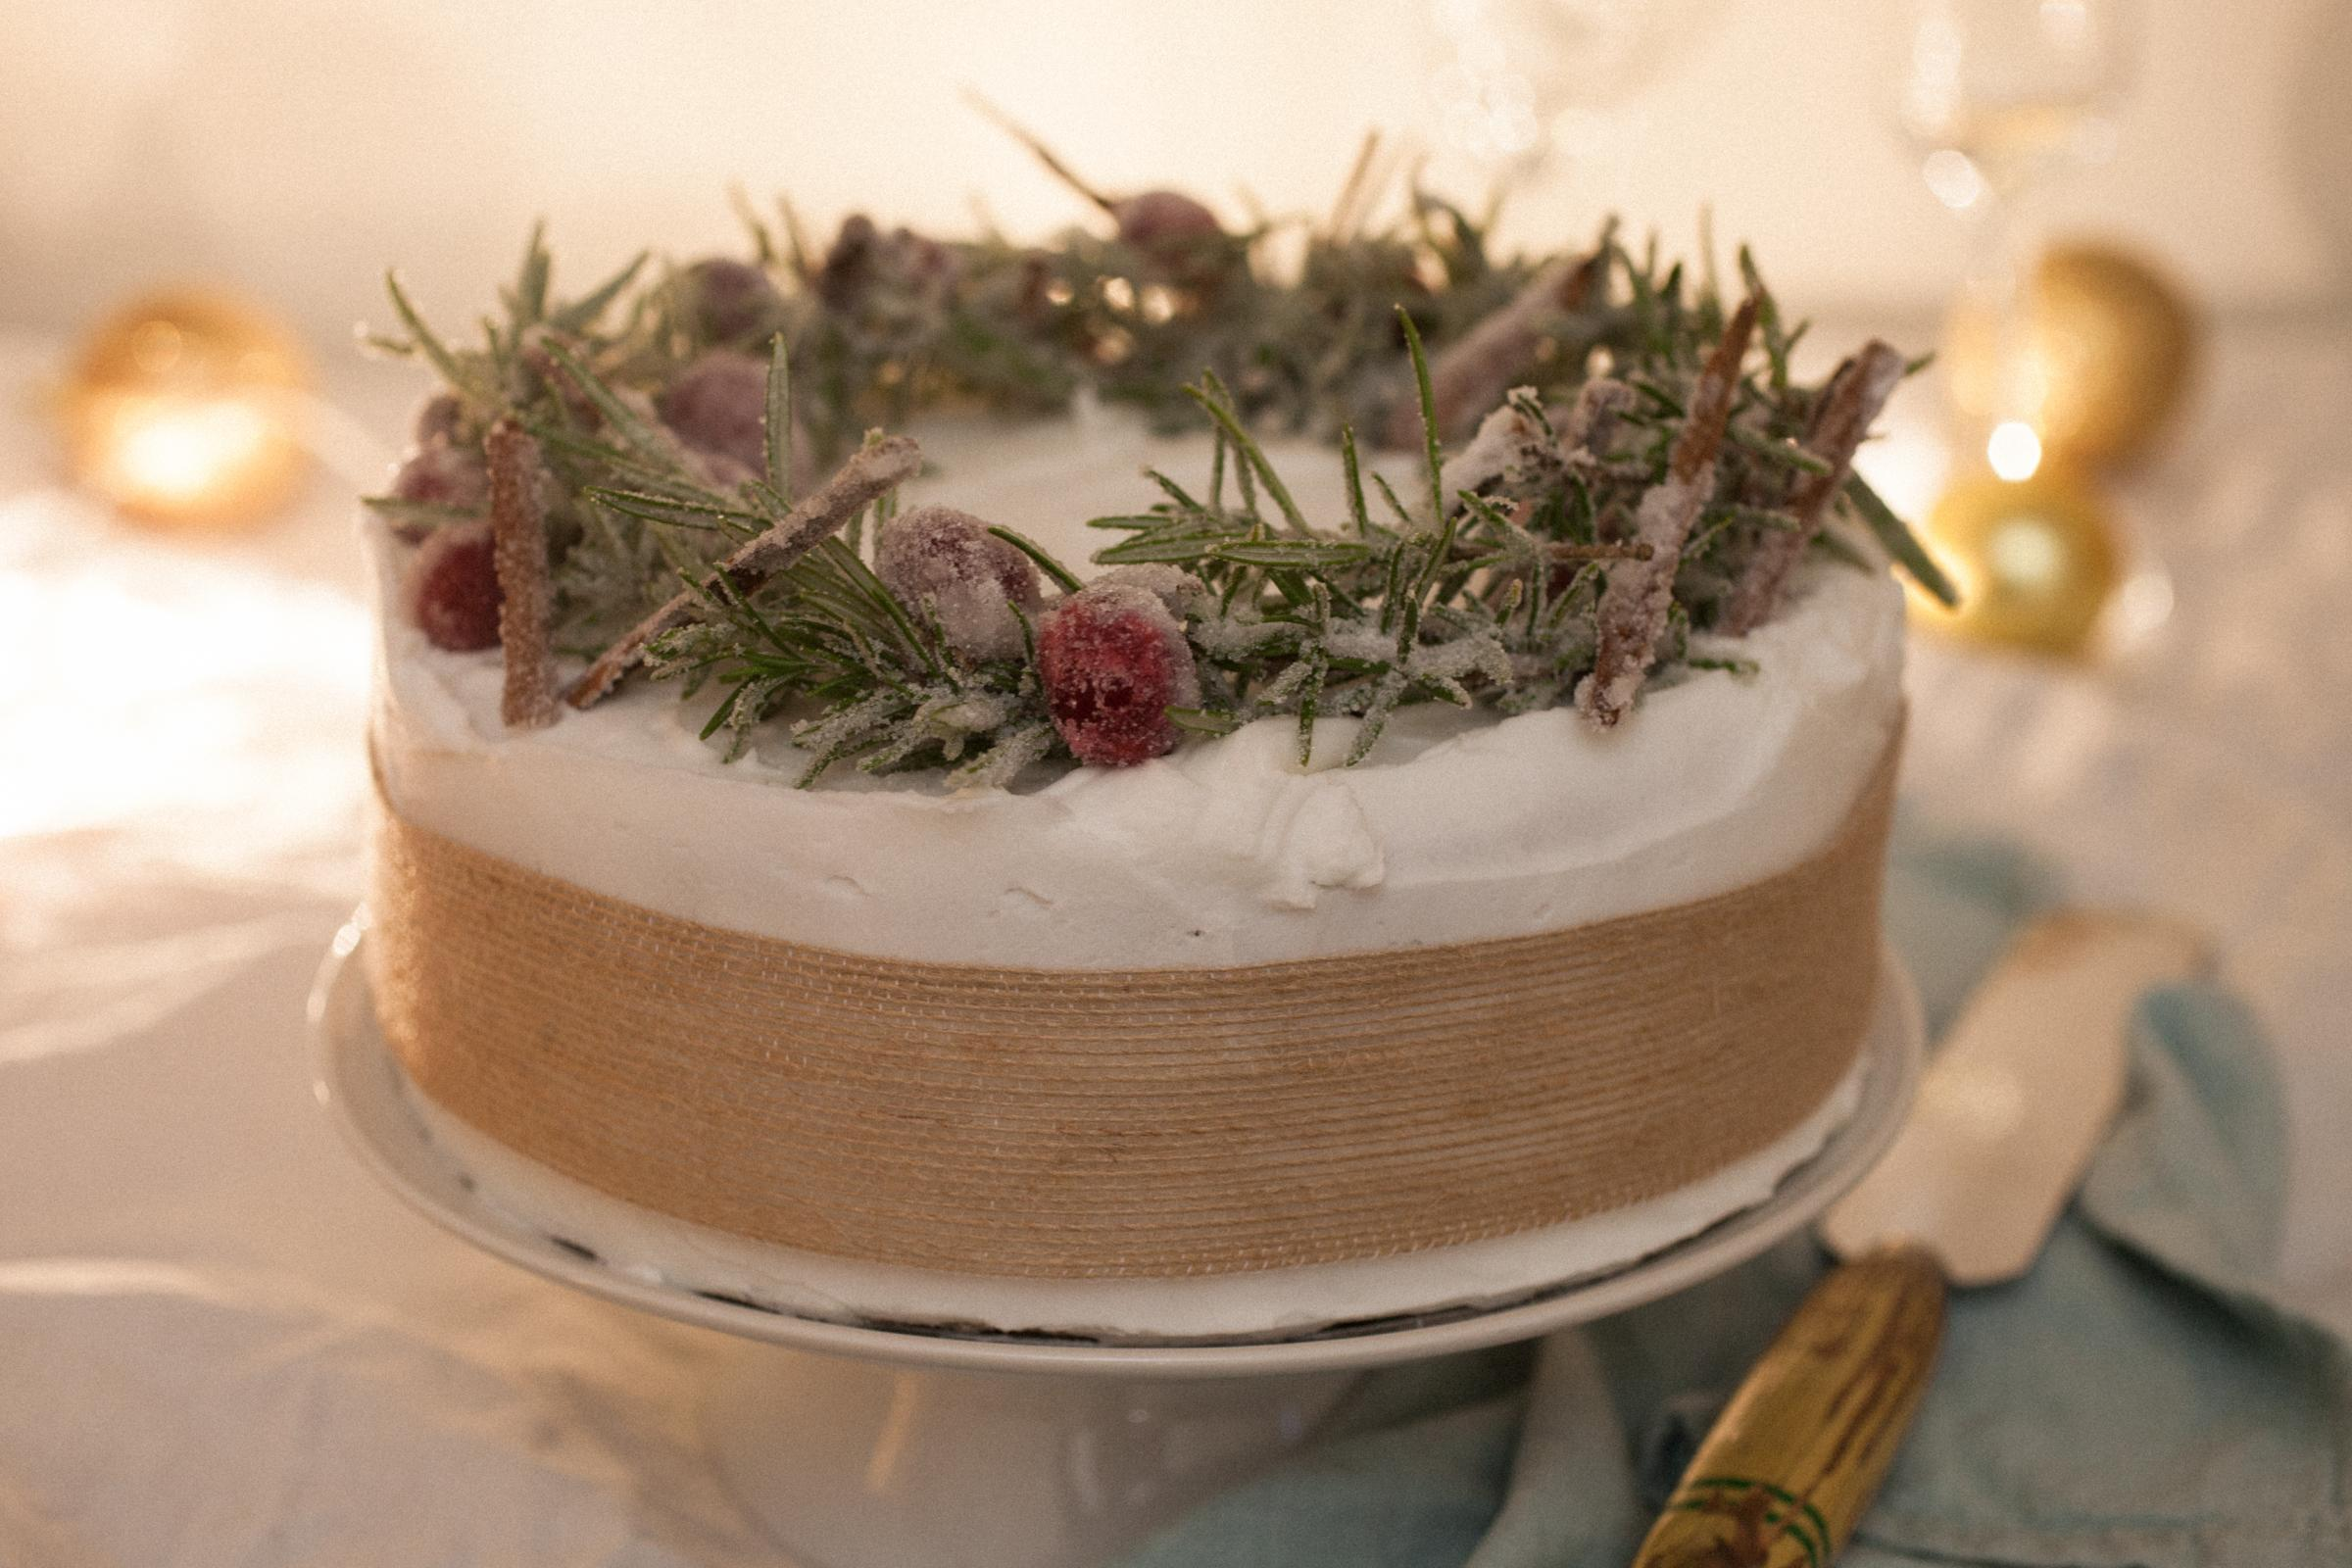 Sophie Smith's Christmas cake